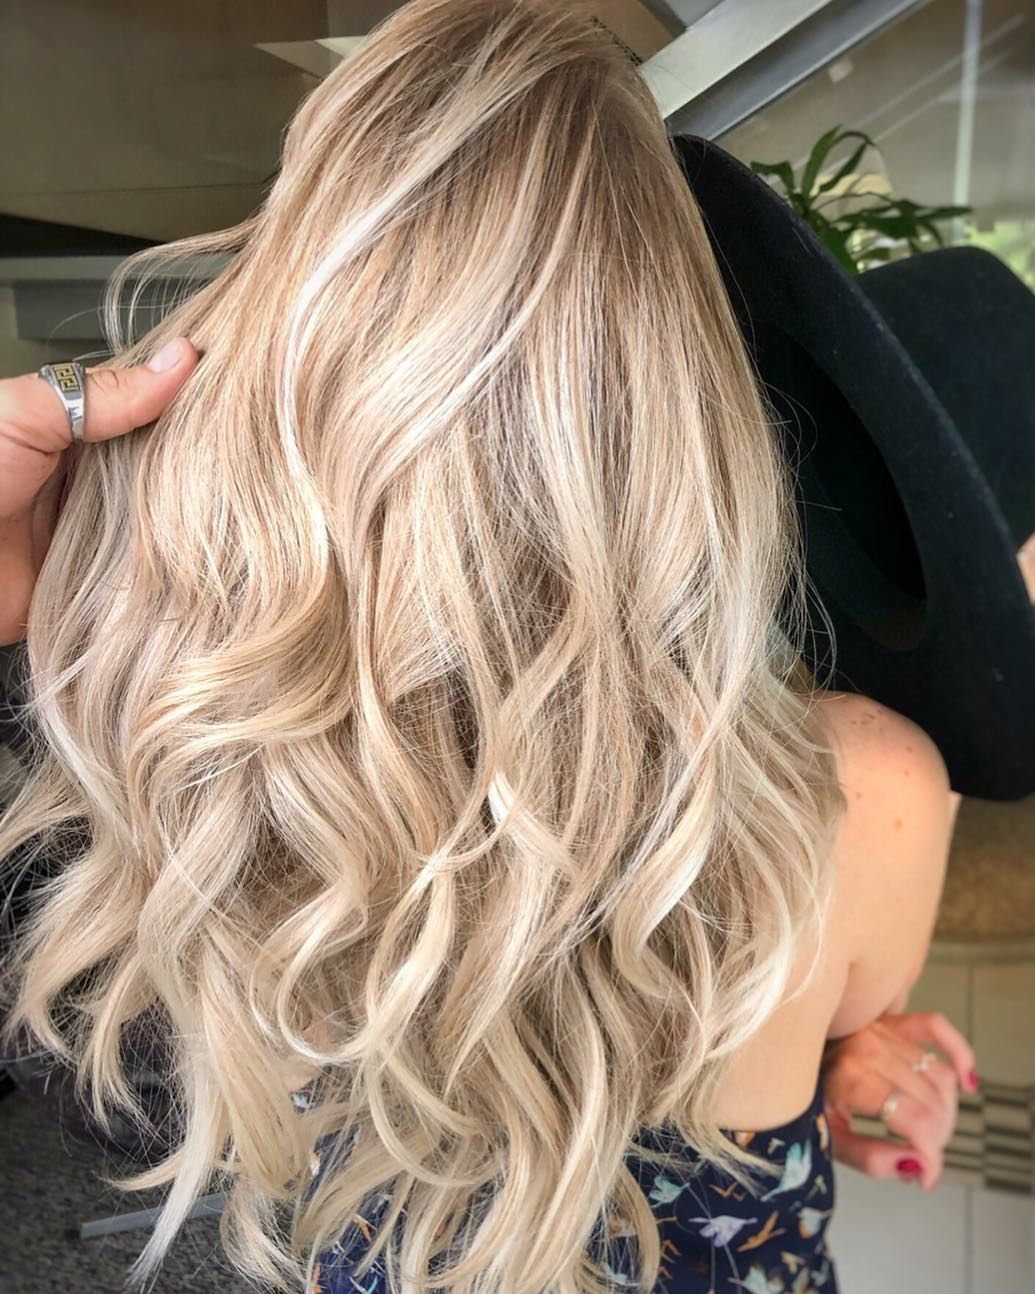 'Champagne Hair' Is The Prettiest Way To Go Blonde—Here's How To Get The Look #champagneblondehair